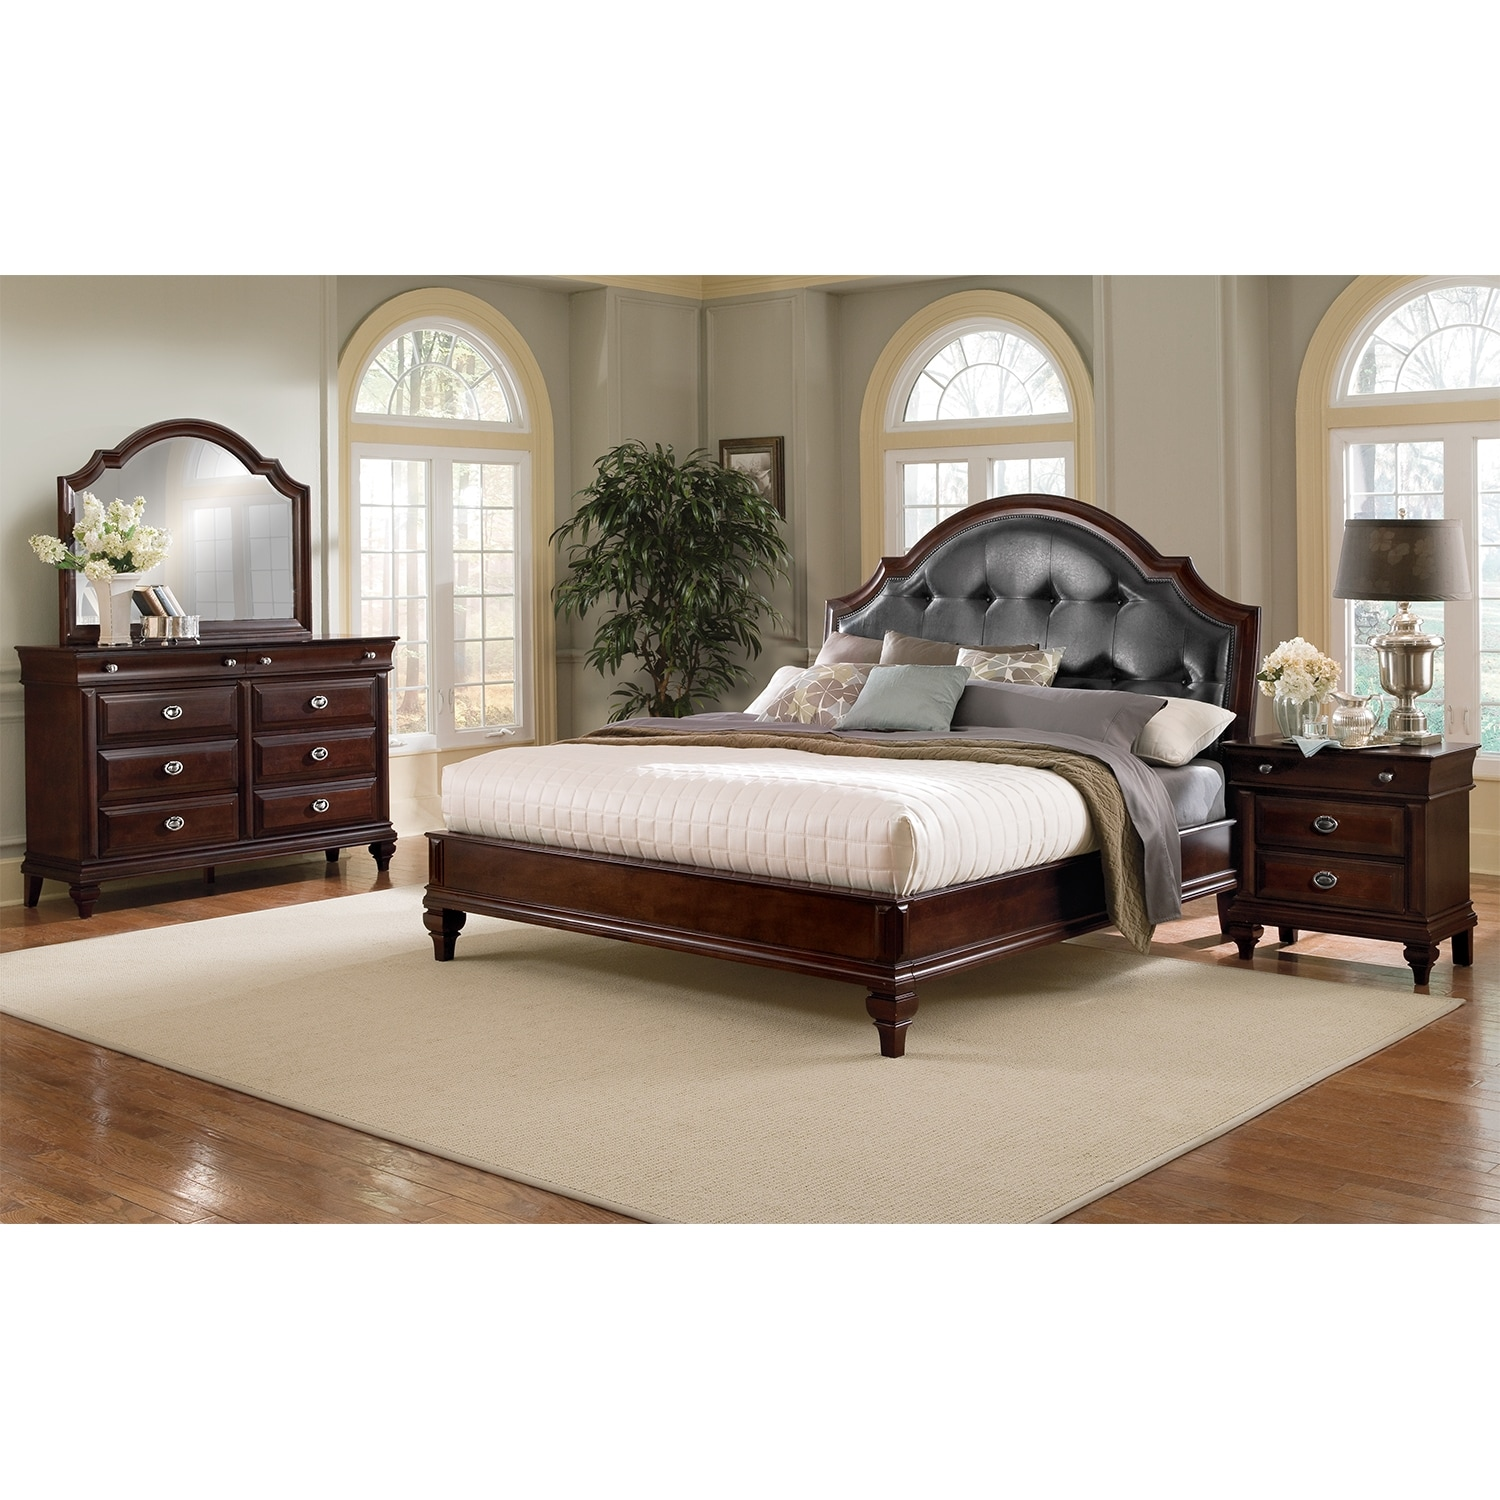 Bedroom Furniture - Manhattan 6 Pc. King Bedroom